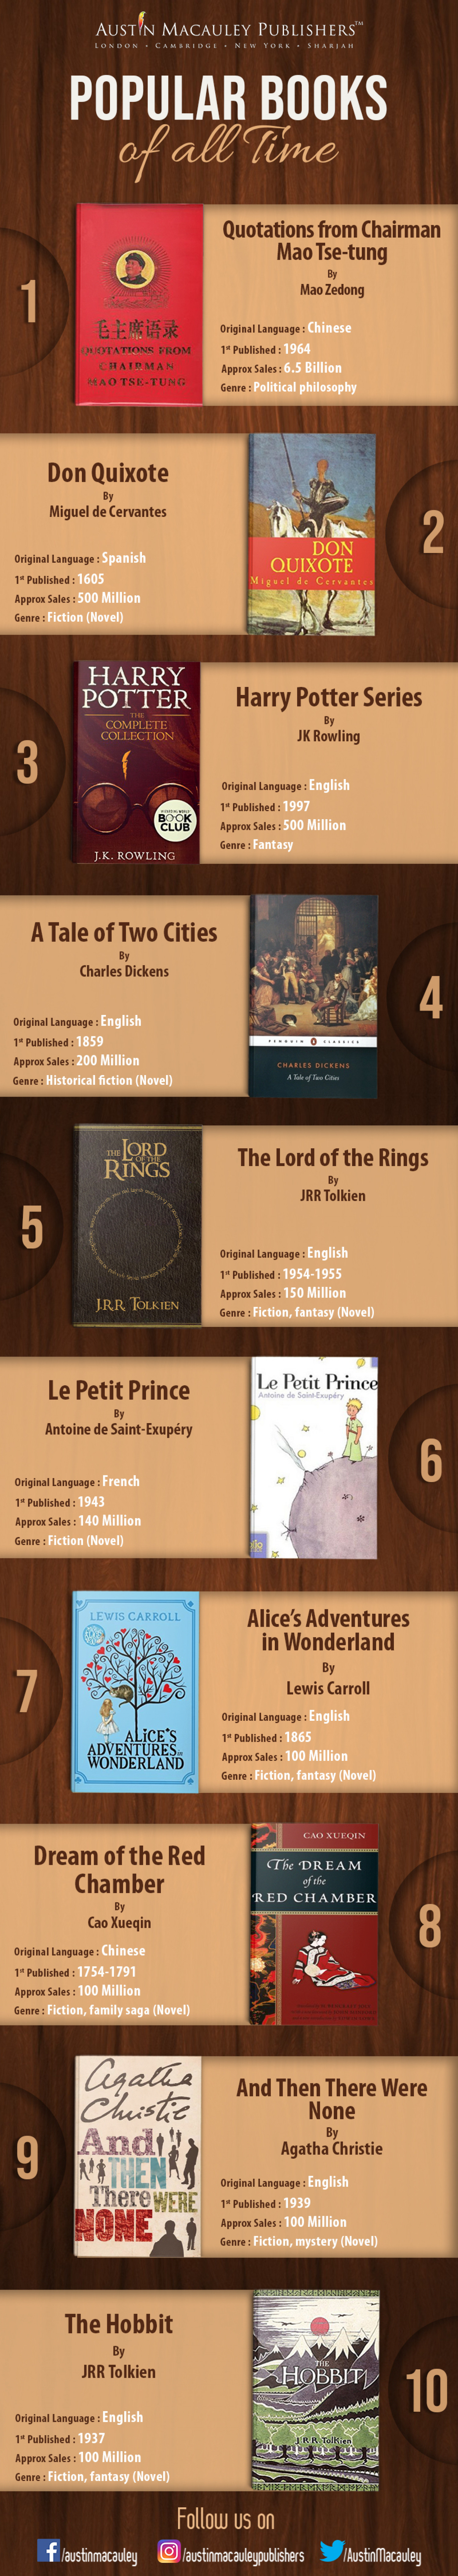 Popular Books Of All Time Infographic